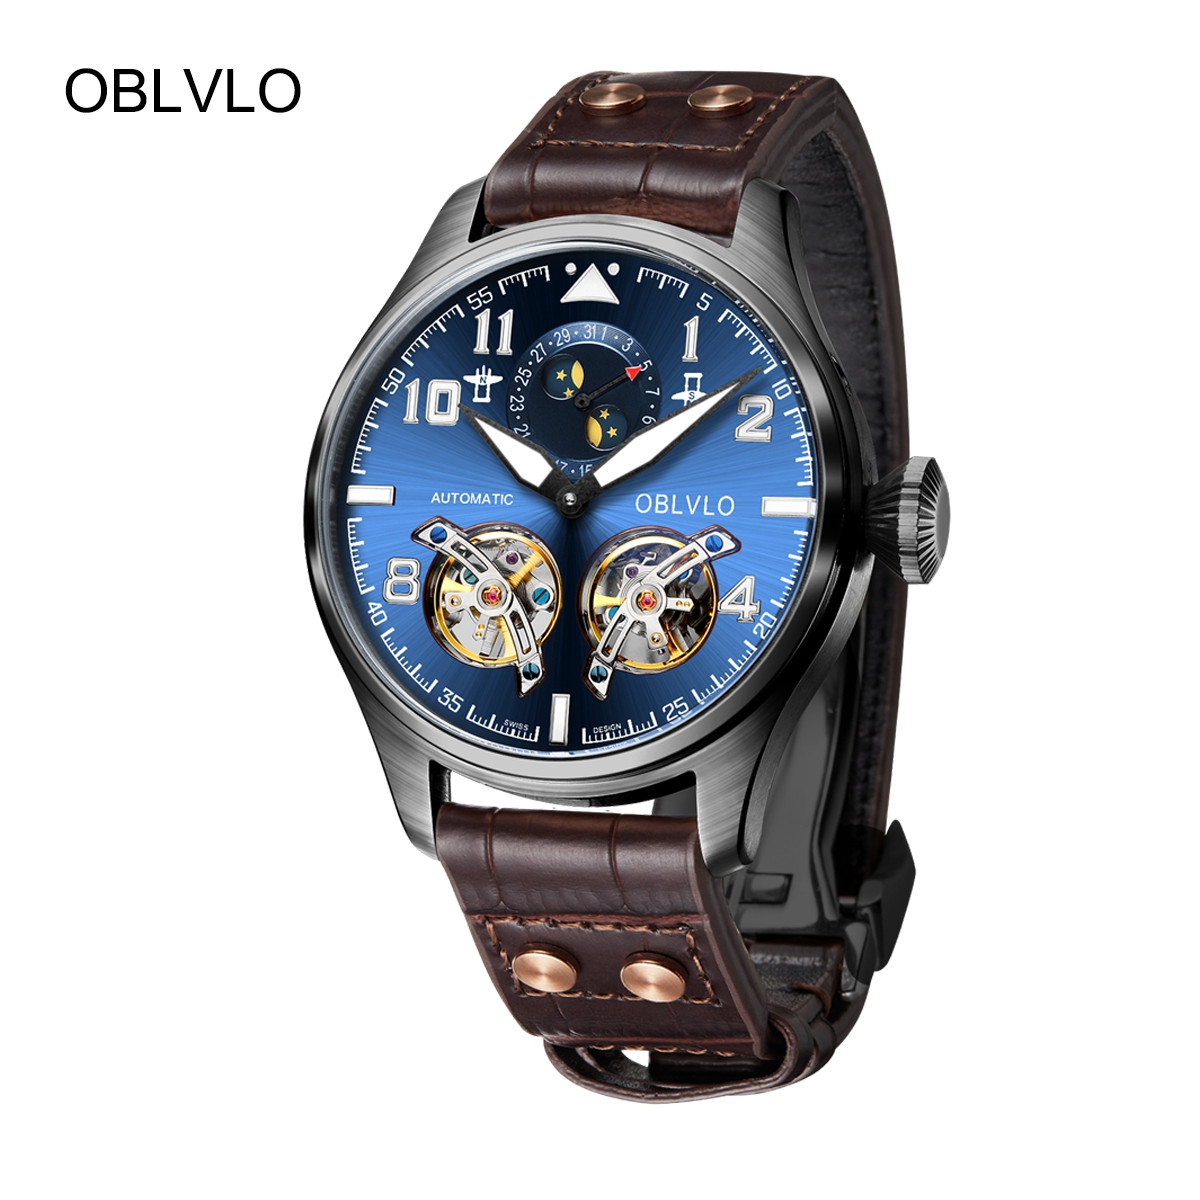 OBLVLO Mens Watches PVD Automatic Watches Blue Dial Leather Strap Tourbillon Watch OBL8232-BLB